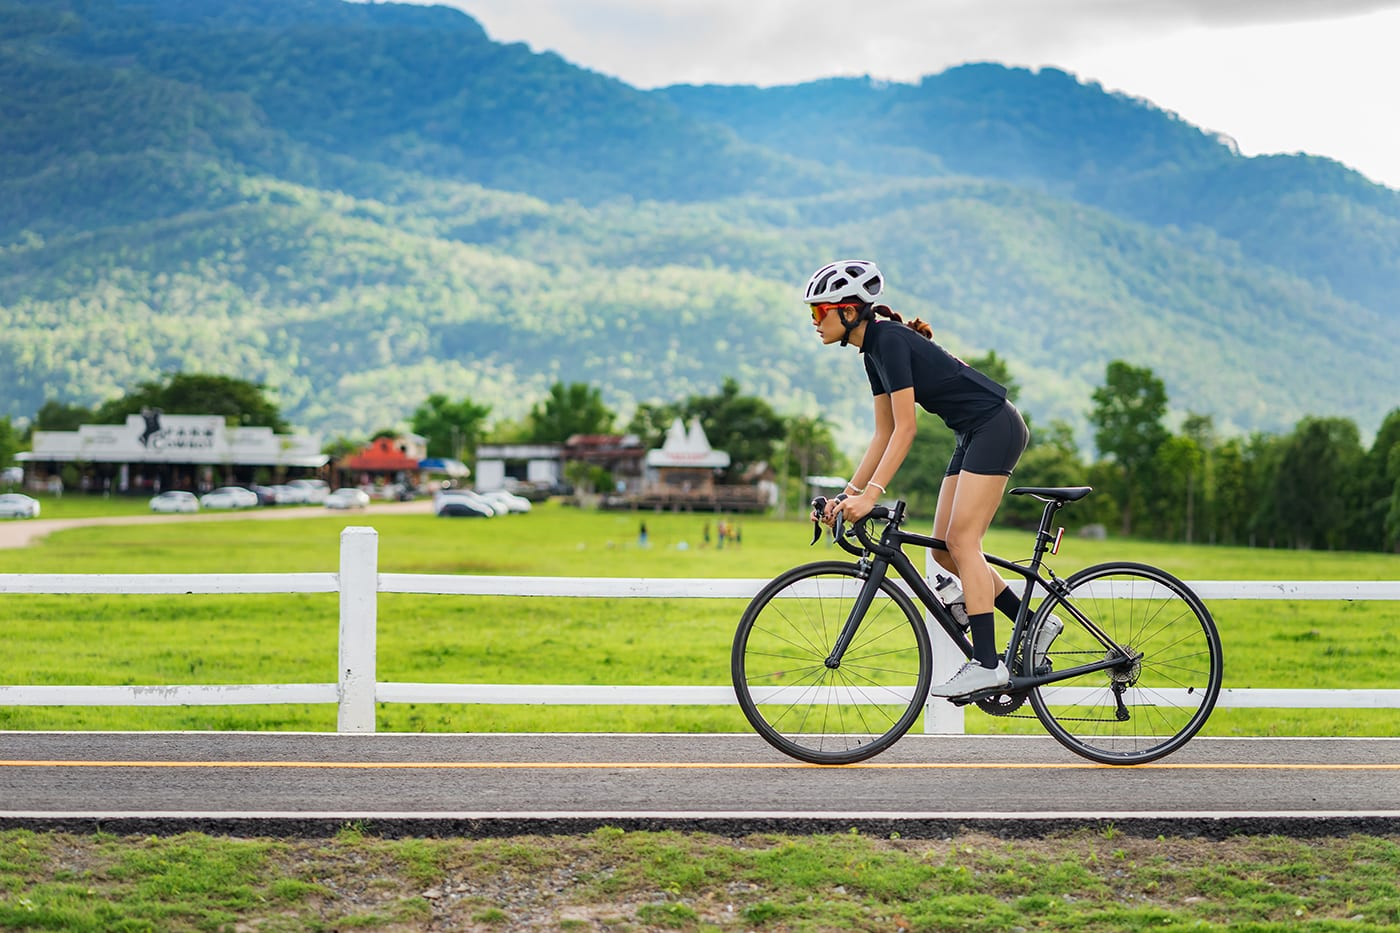 cycling-for-healthy-lifestyle